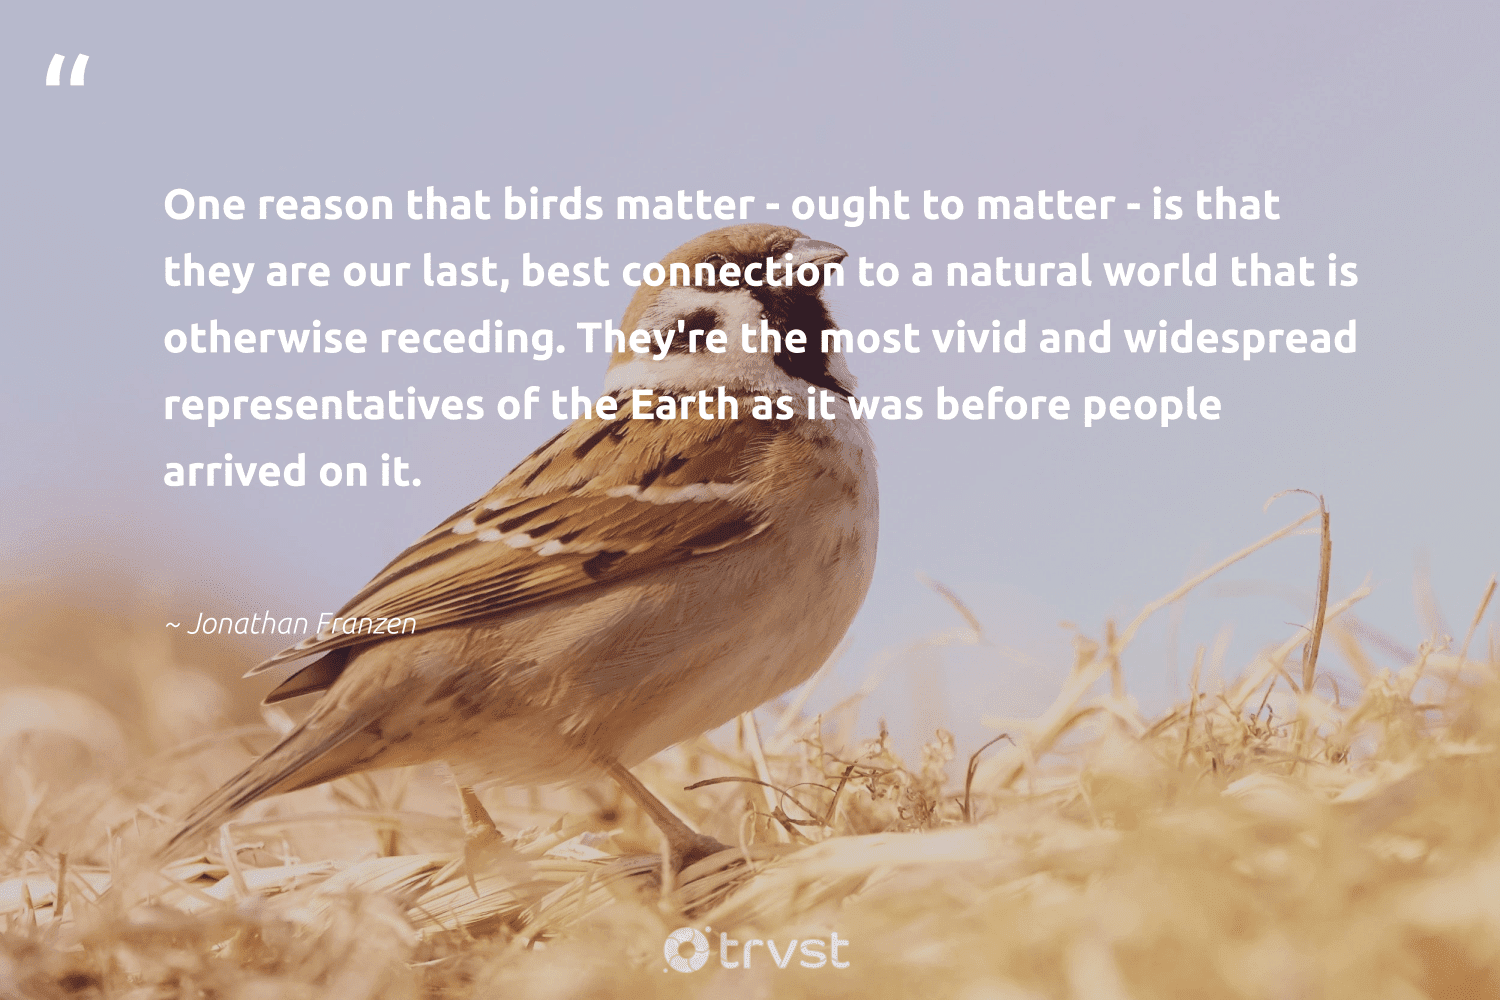 """""""One reason that birds matter - ought to matter - is that they are our last, best connection to a natural world that is otherwise receding. They're the most vivid and widespread representatives of the Earth as it was before people arrived on it.""""  - Jonathan Franzen #trvst #quotes #earth #natural #birds #nature #volunteer #dotherightthing #planet #naturelovers #impact #conservation"""